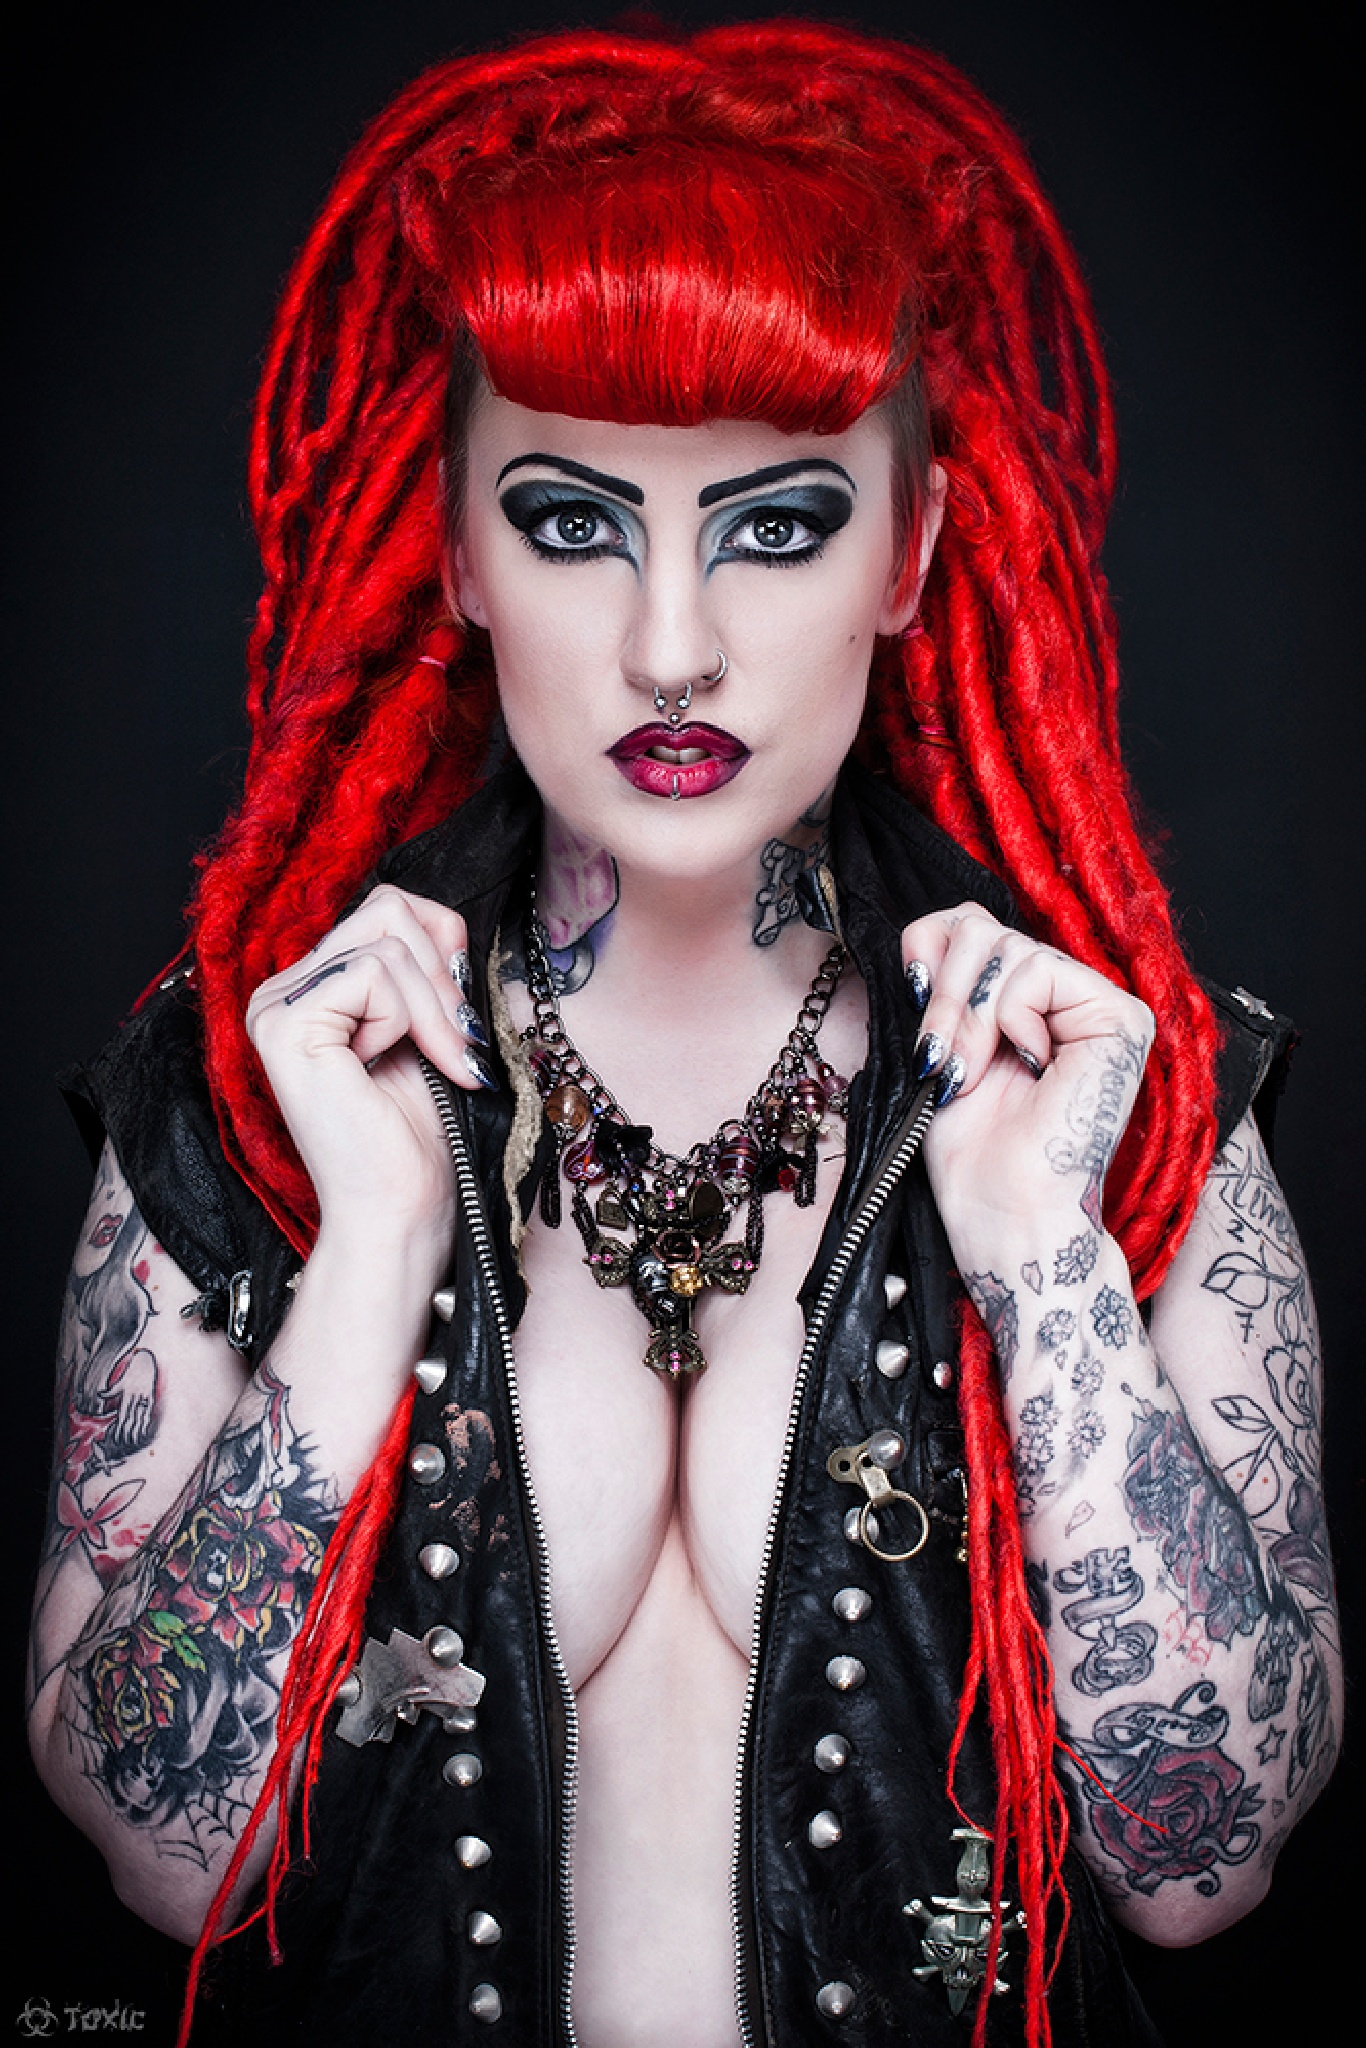 RED by Toxic